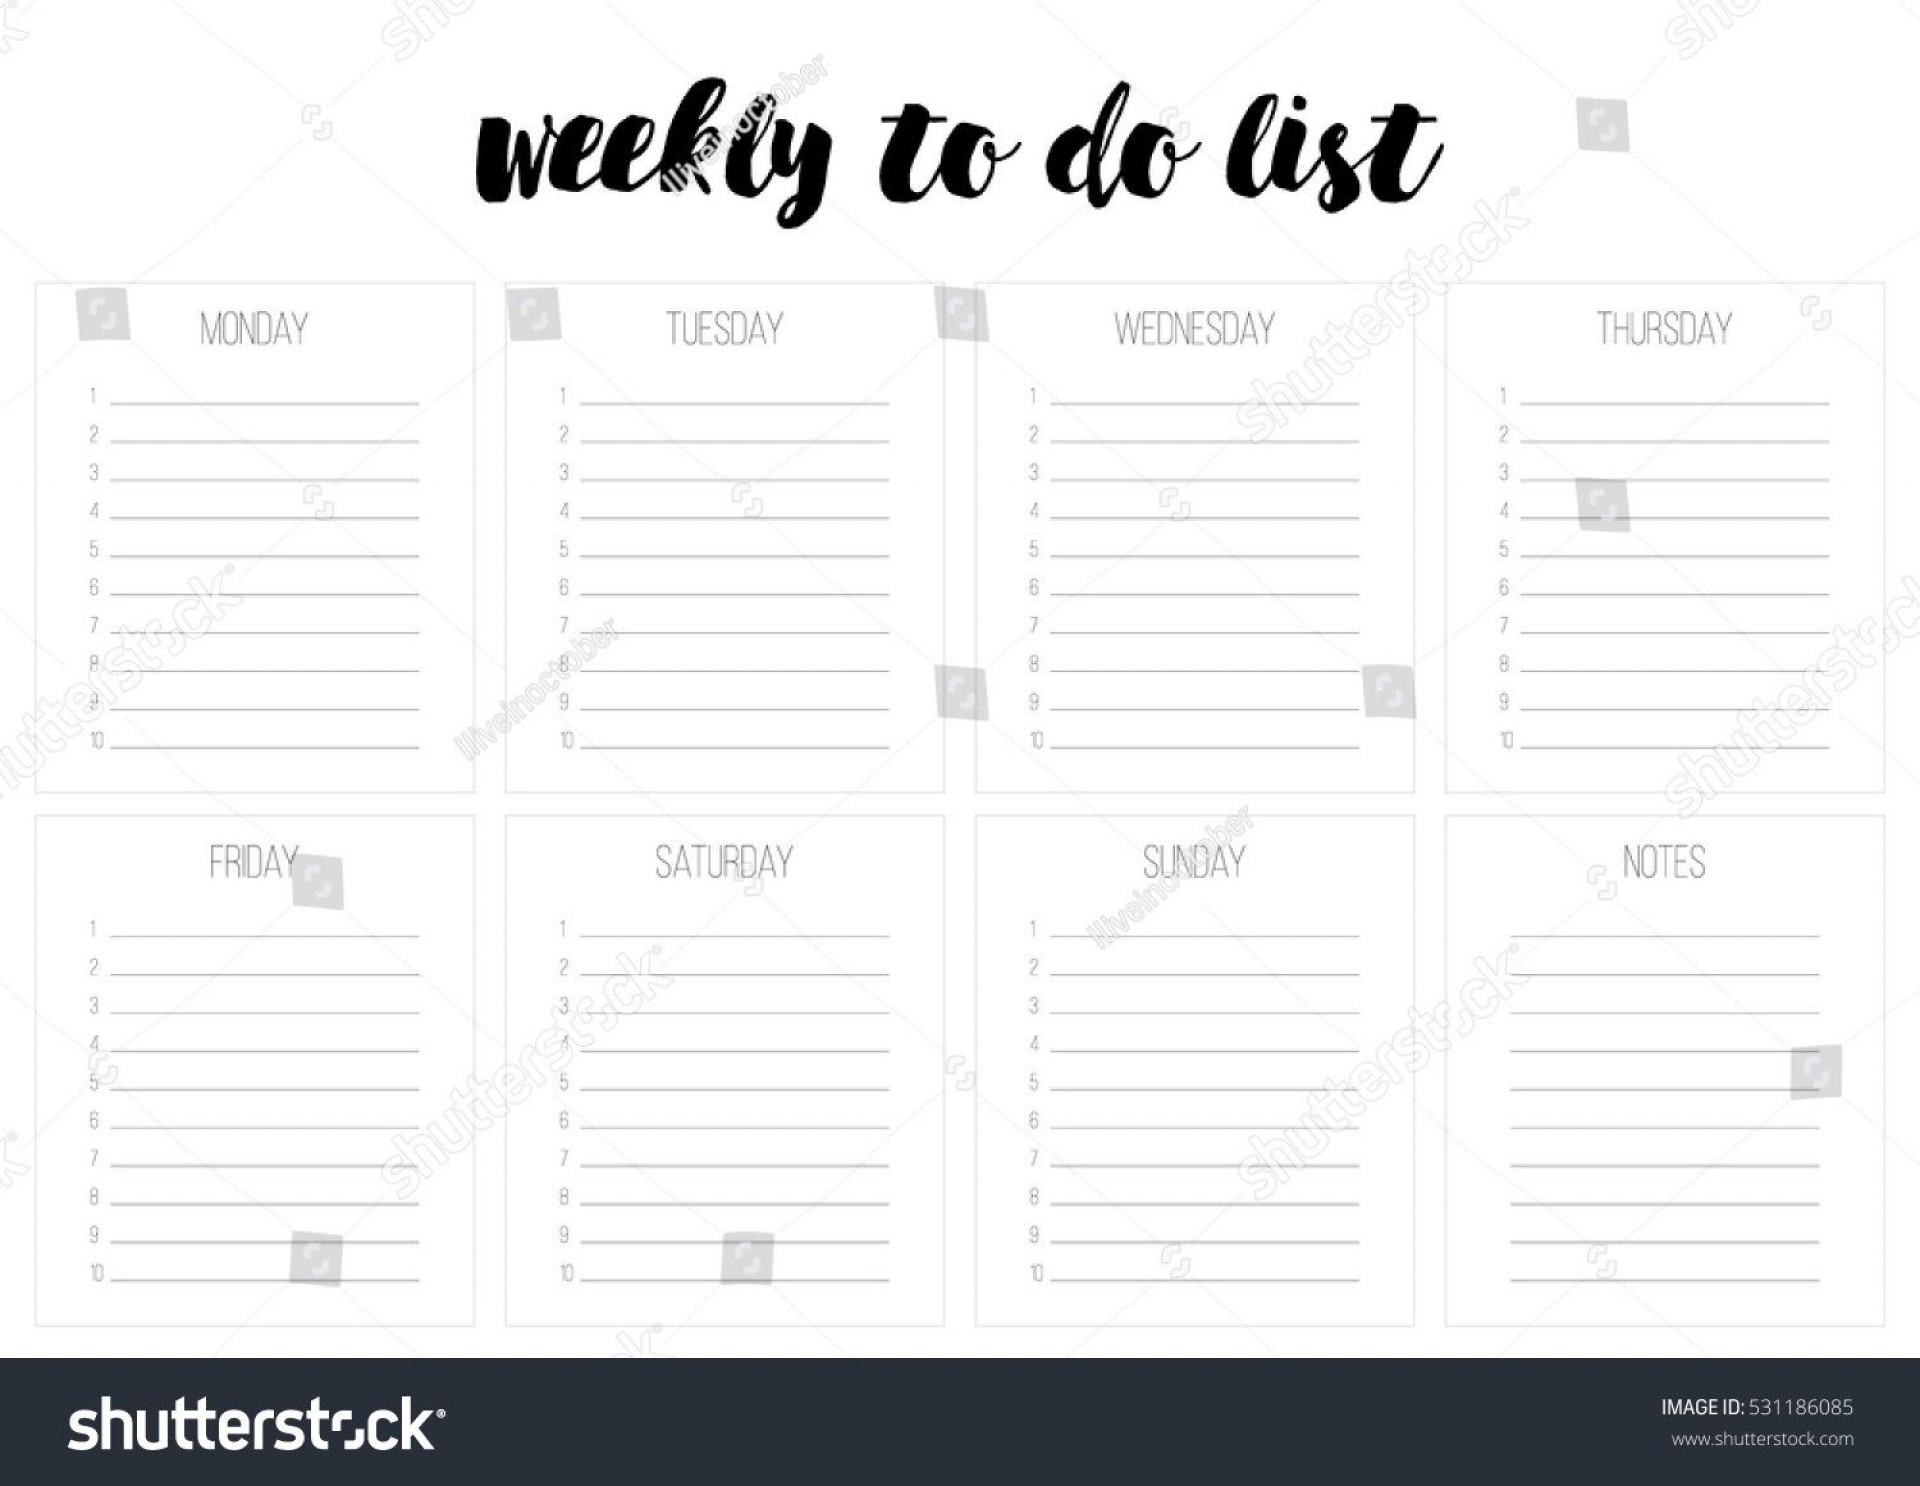 008 Exceptional Weekly Todo List Template Design  To Do Pinterest Task Excel Daily Pdf1920